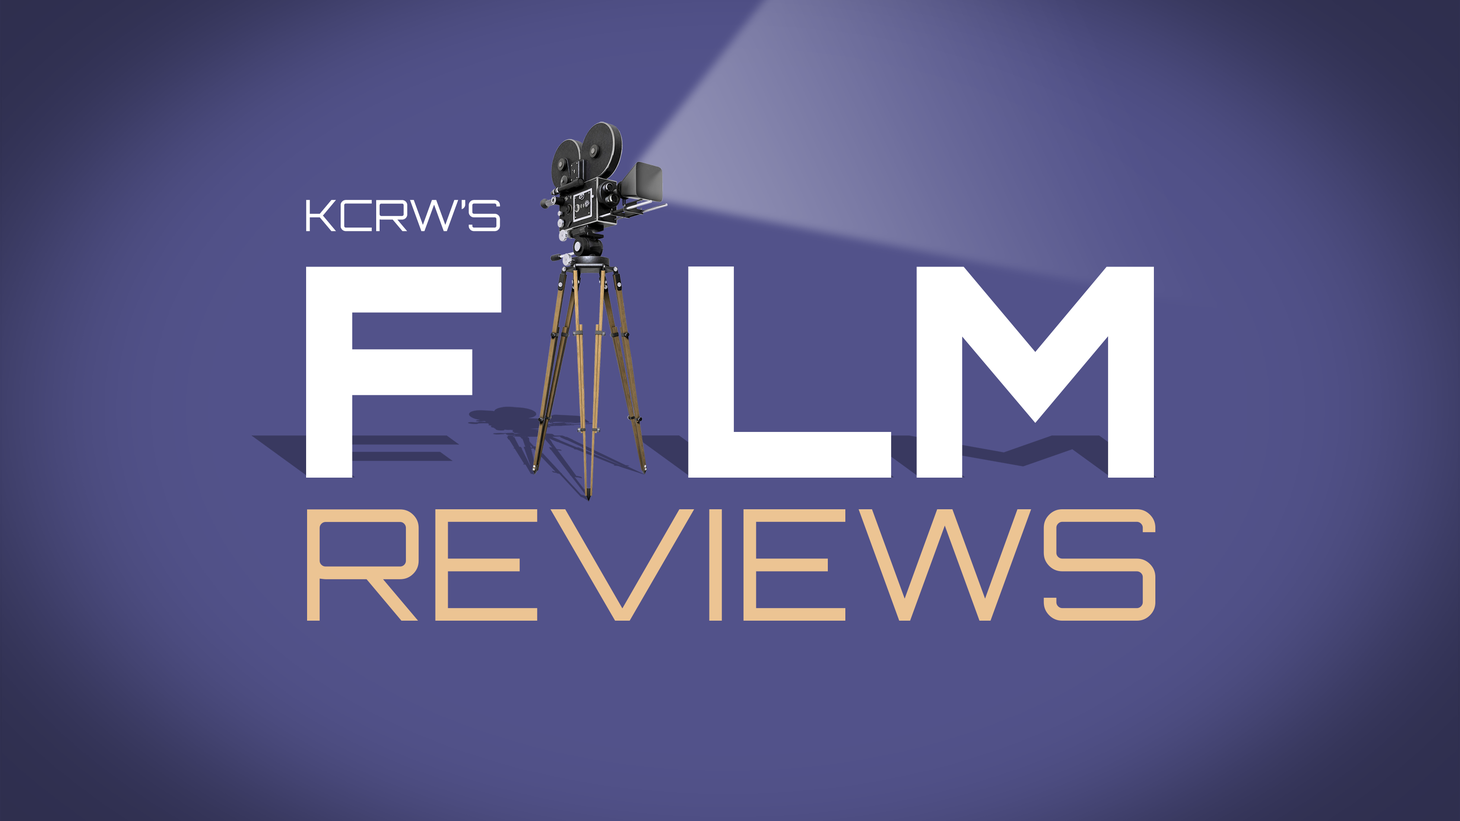 The Pulitzer Prize-winning critic of The Wall Street Journal, Joe Morgenstern reviews films weekly in the paper and on KCRW.